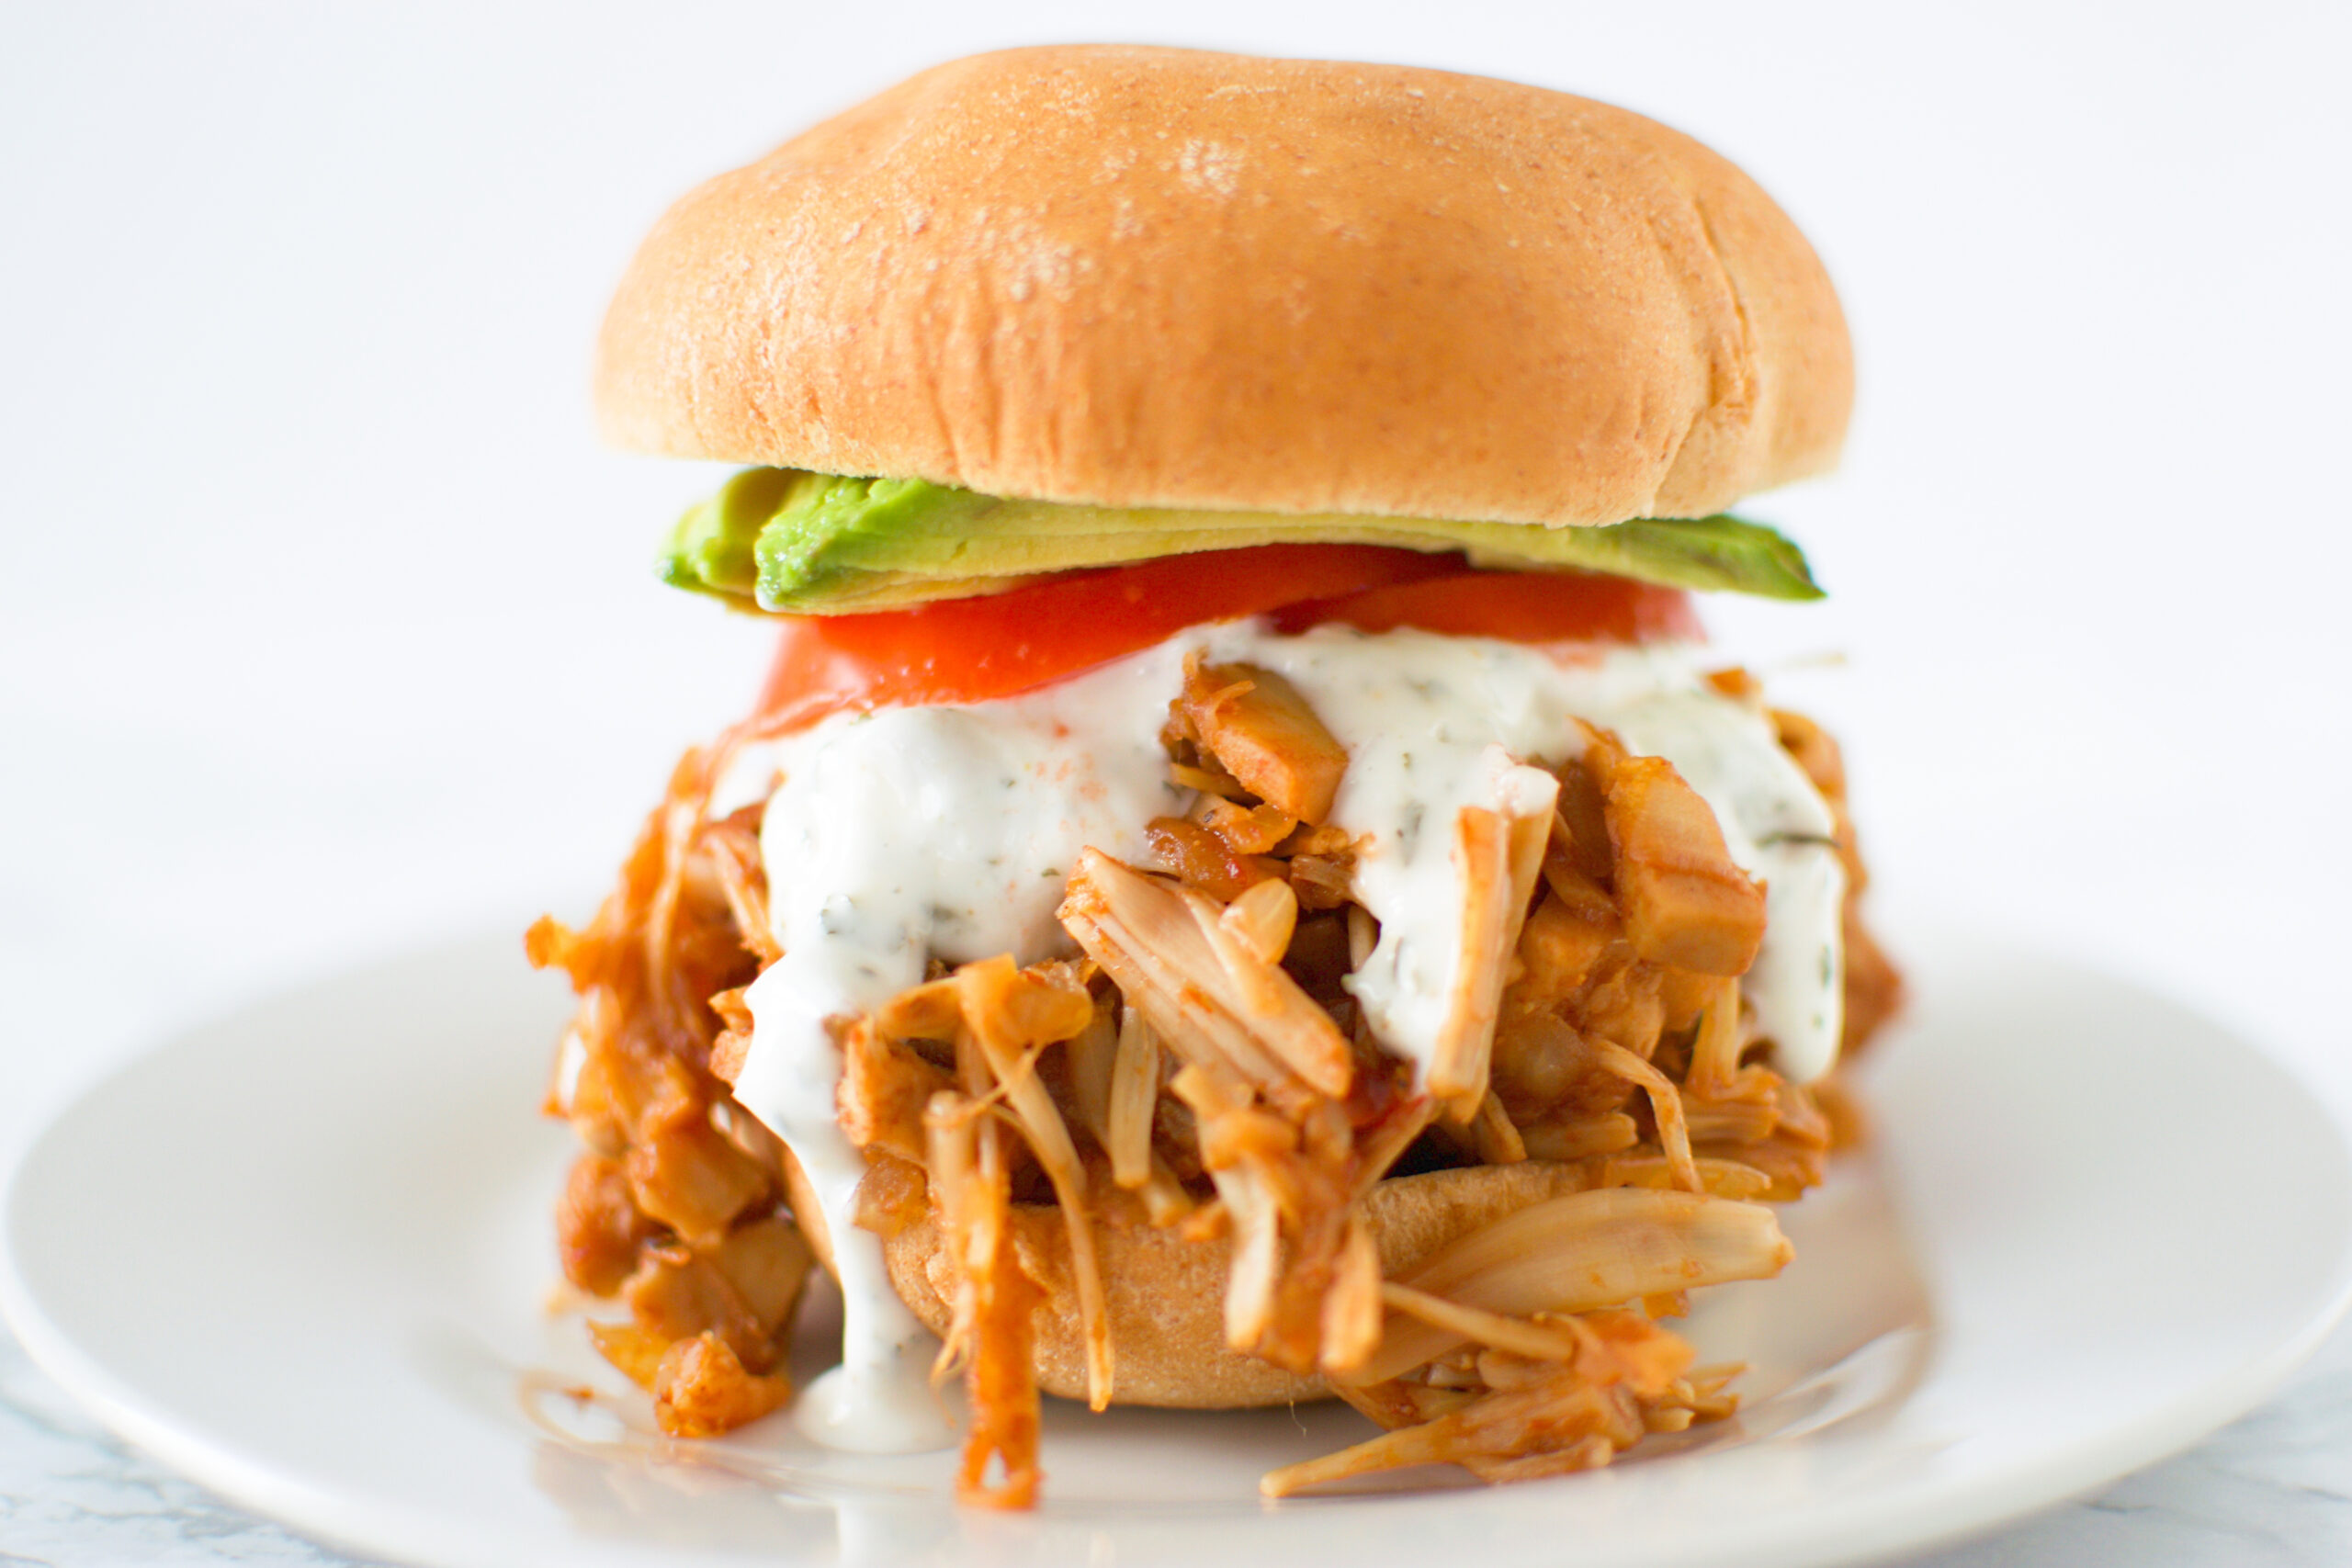 Jackfruit Pulled Pork Sandwich